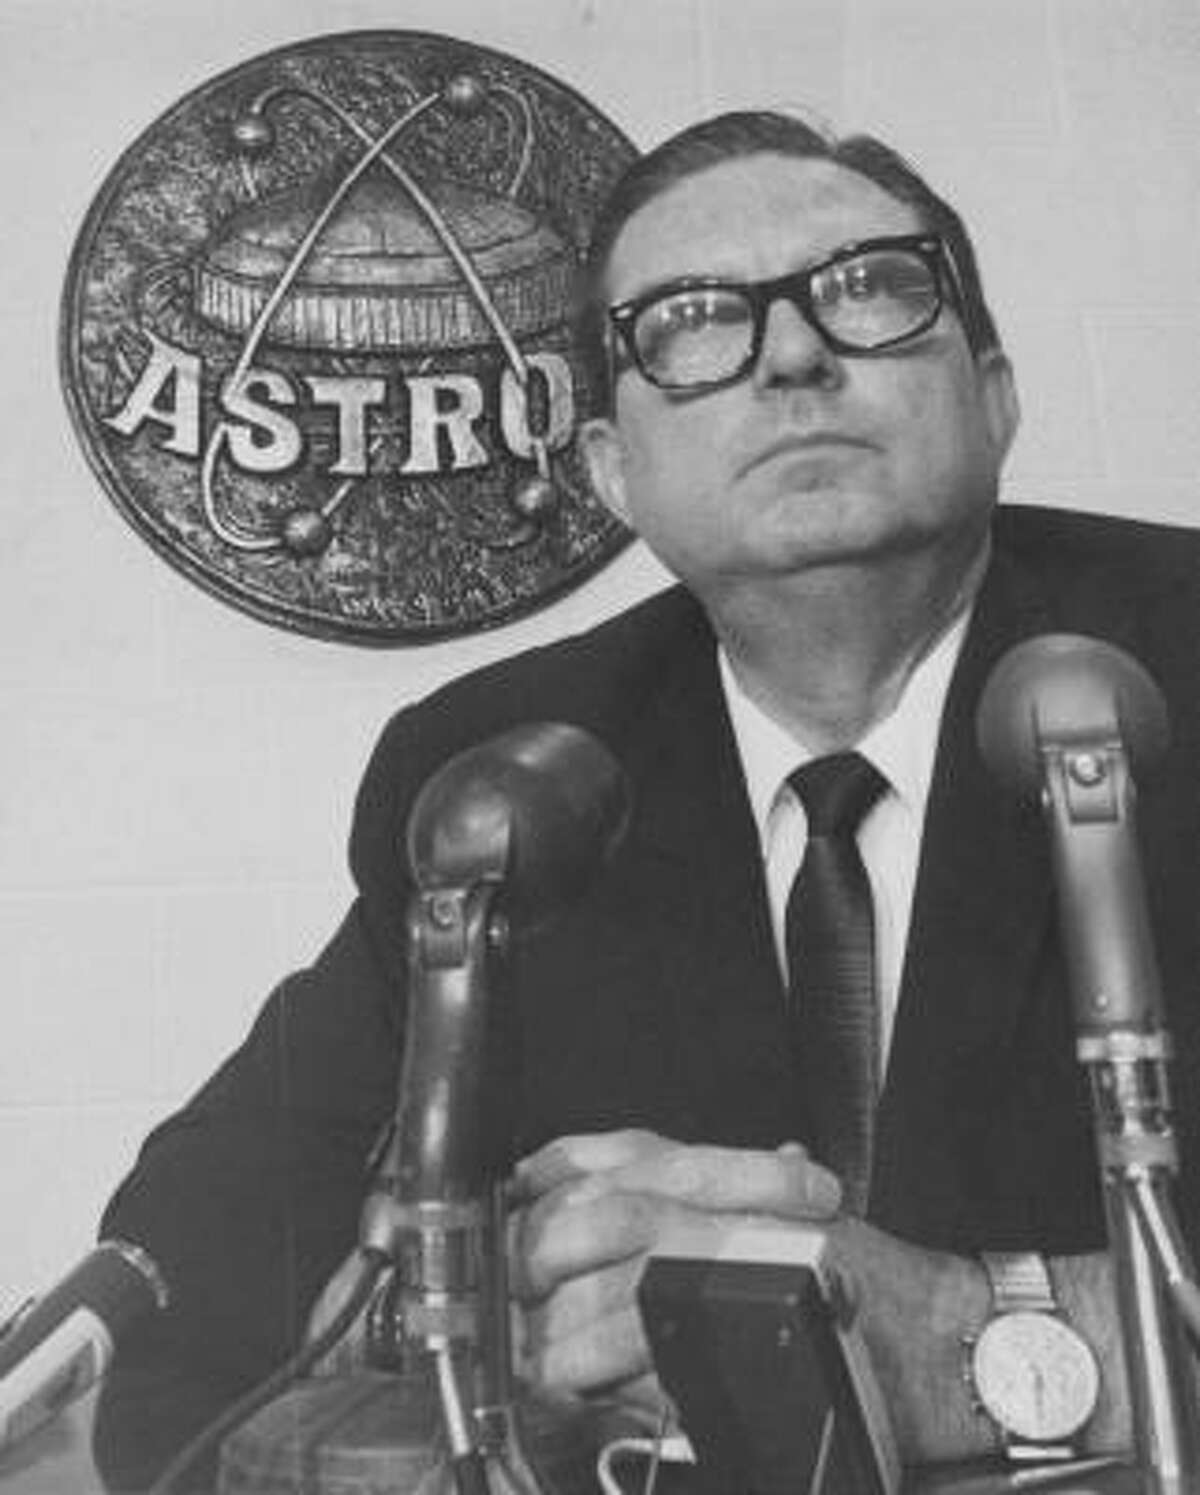 1962-1976 Lowlights: No playoff appearances, turmoil in the wake of financial losses by Roy Hofheinz (pictured) in the 1970s.